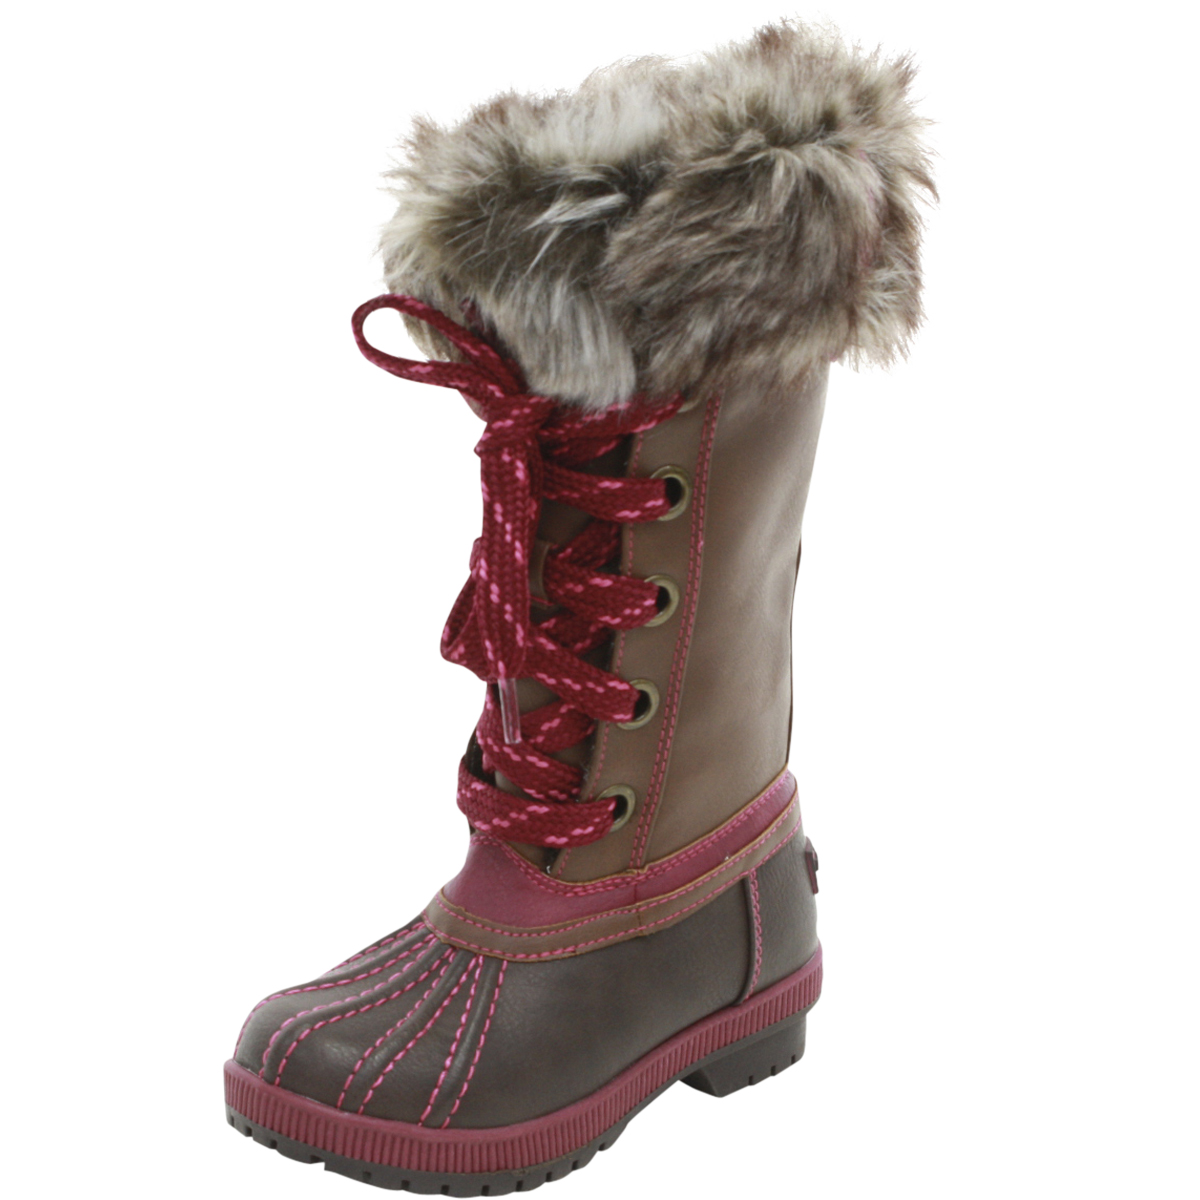 Image of London Fog Little/Big Girl's Melton Water Resistant Snow Boots Shoes - Dark Brown/Pink - 11 M US Little Kid